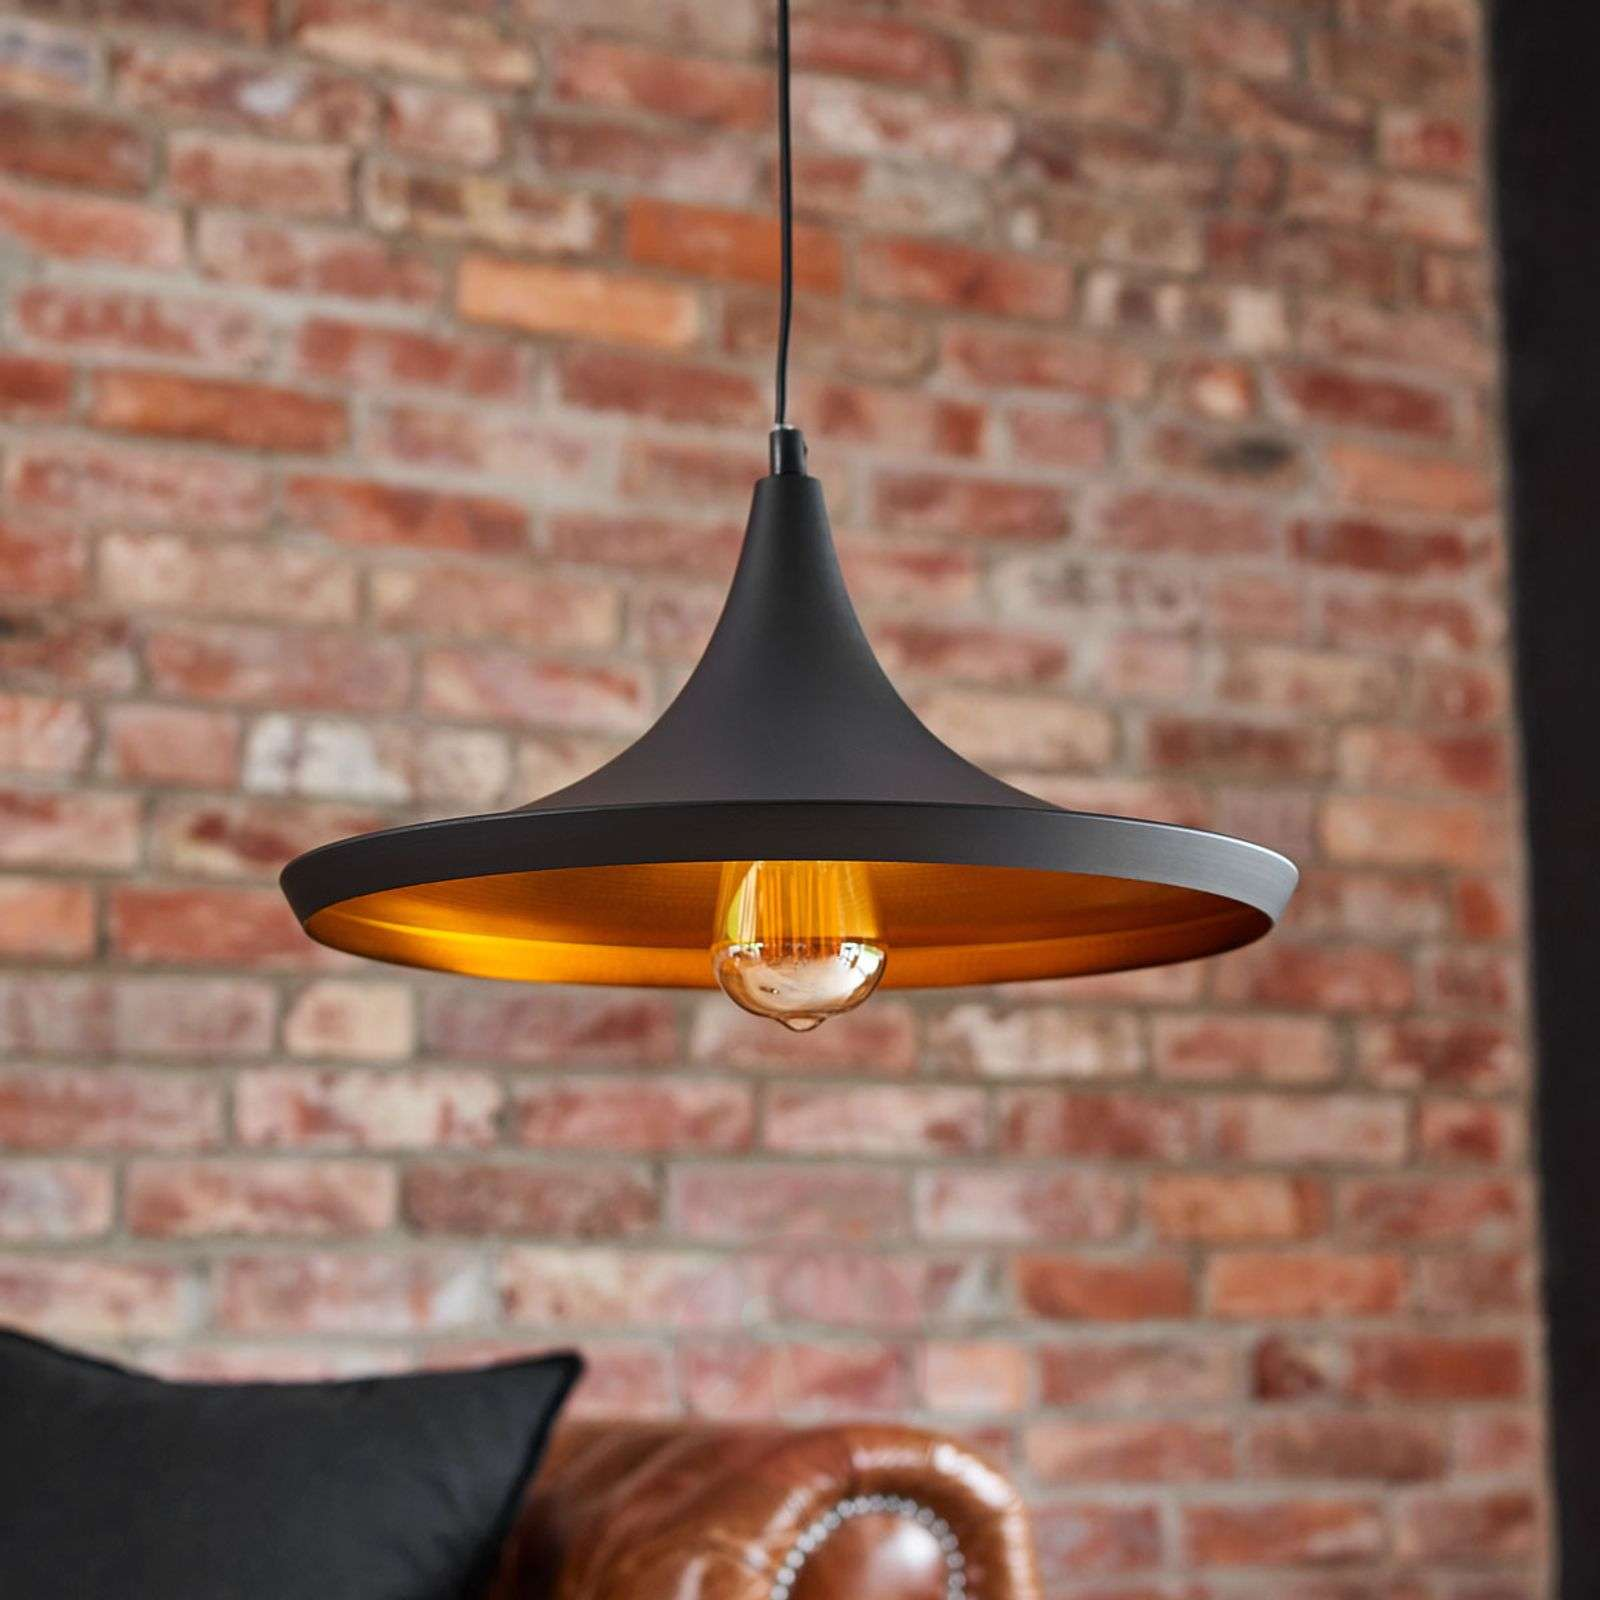 Black and copper-coloured Broadway pendant light-3006296-01